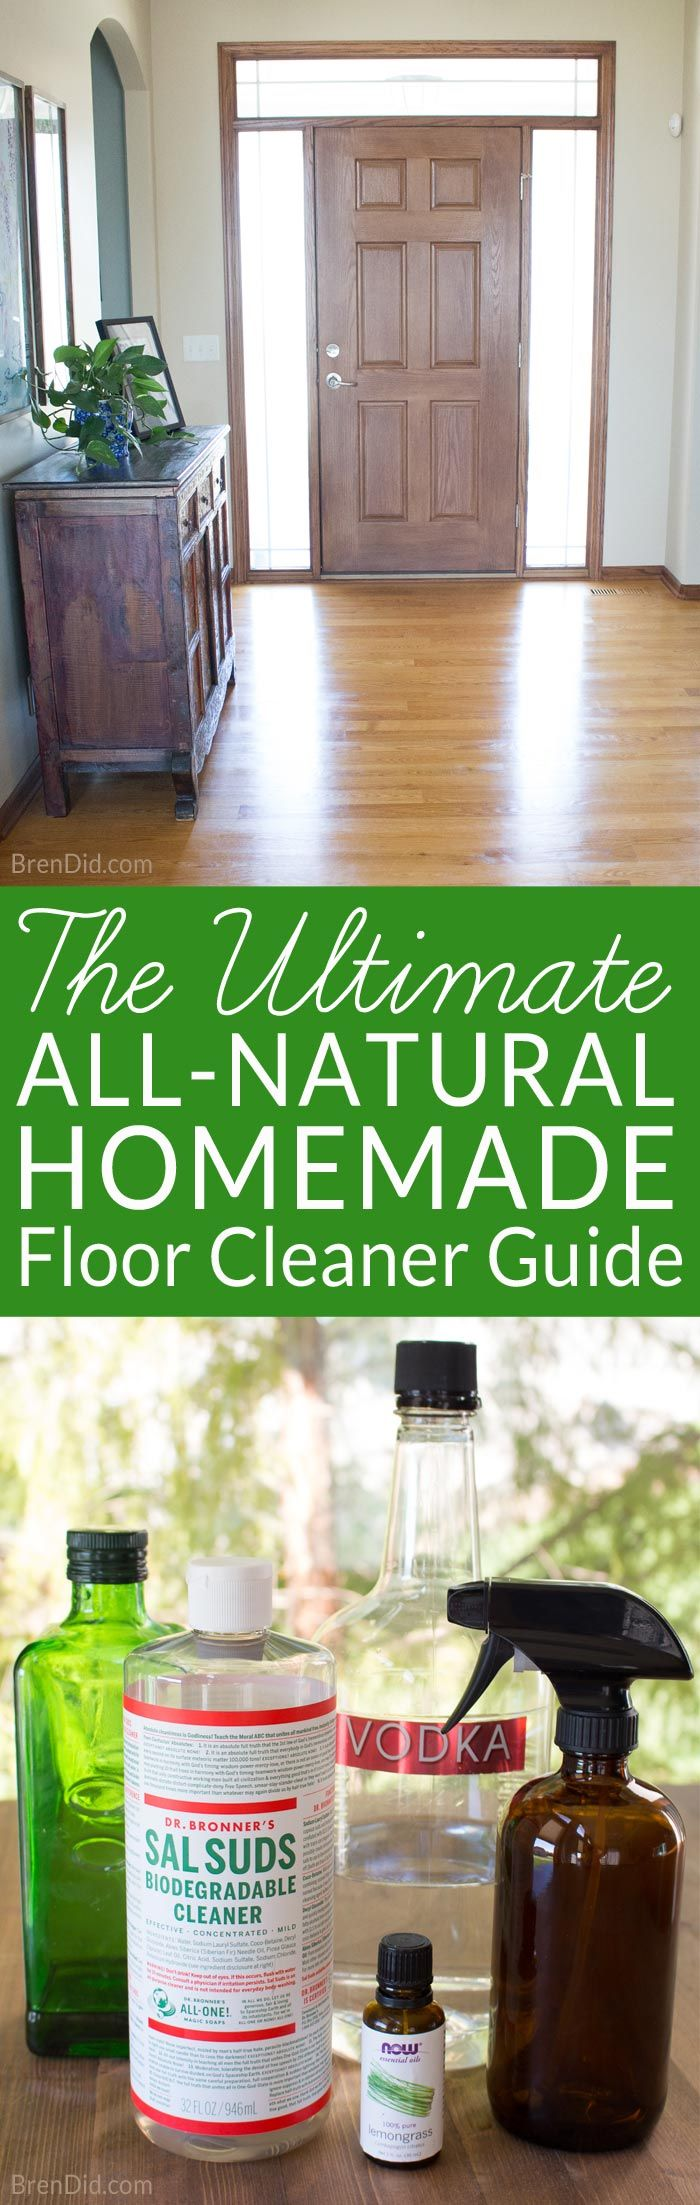 Cleaning floors can be a chore. Keep your hard surfaces in tip, top shape with this guide to natural floor cleaning and homemade floor cleaner recipe. It's the Ultimate All-Natural Homemade Floor Cleaner Guide!